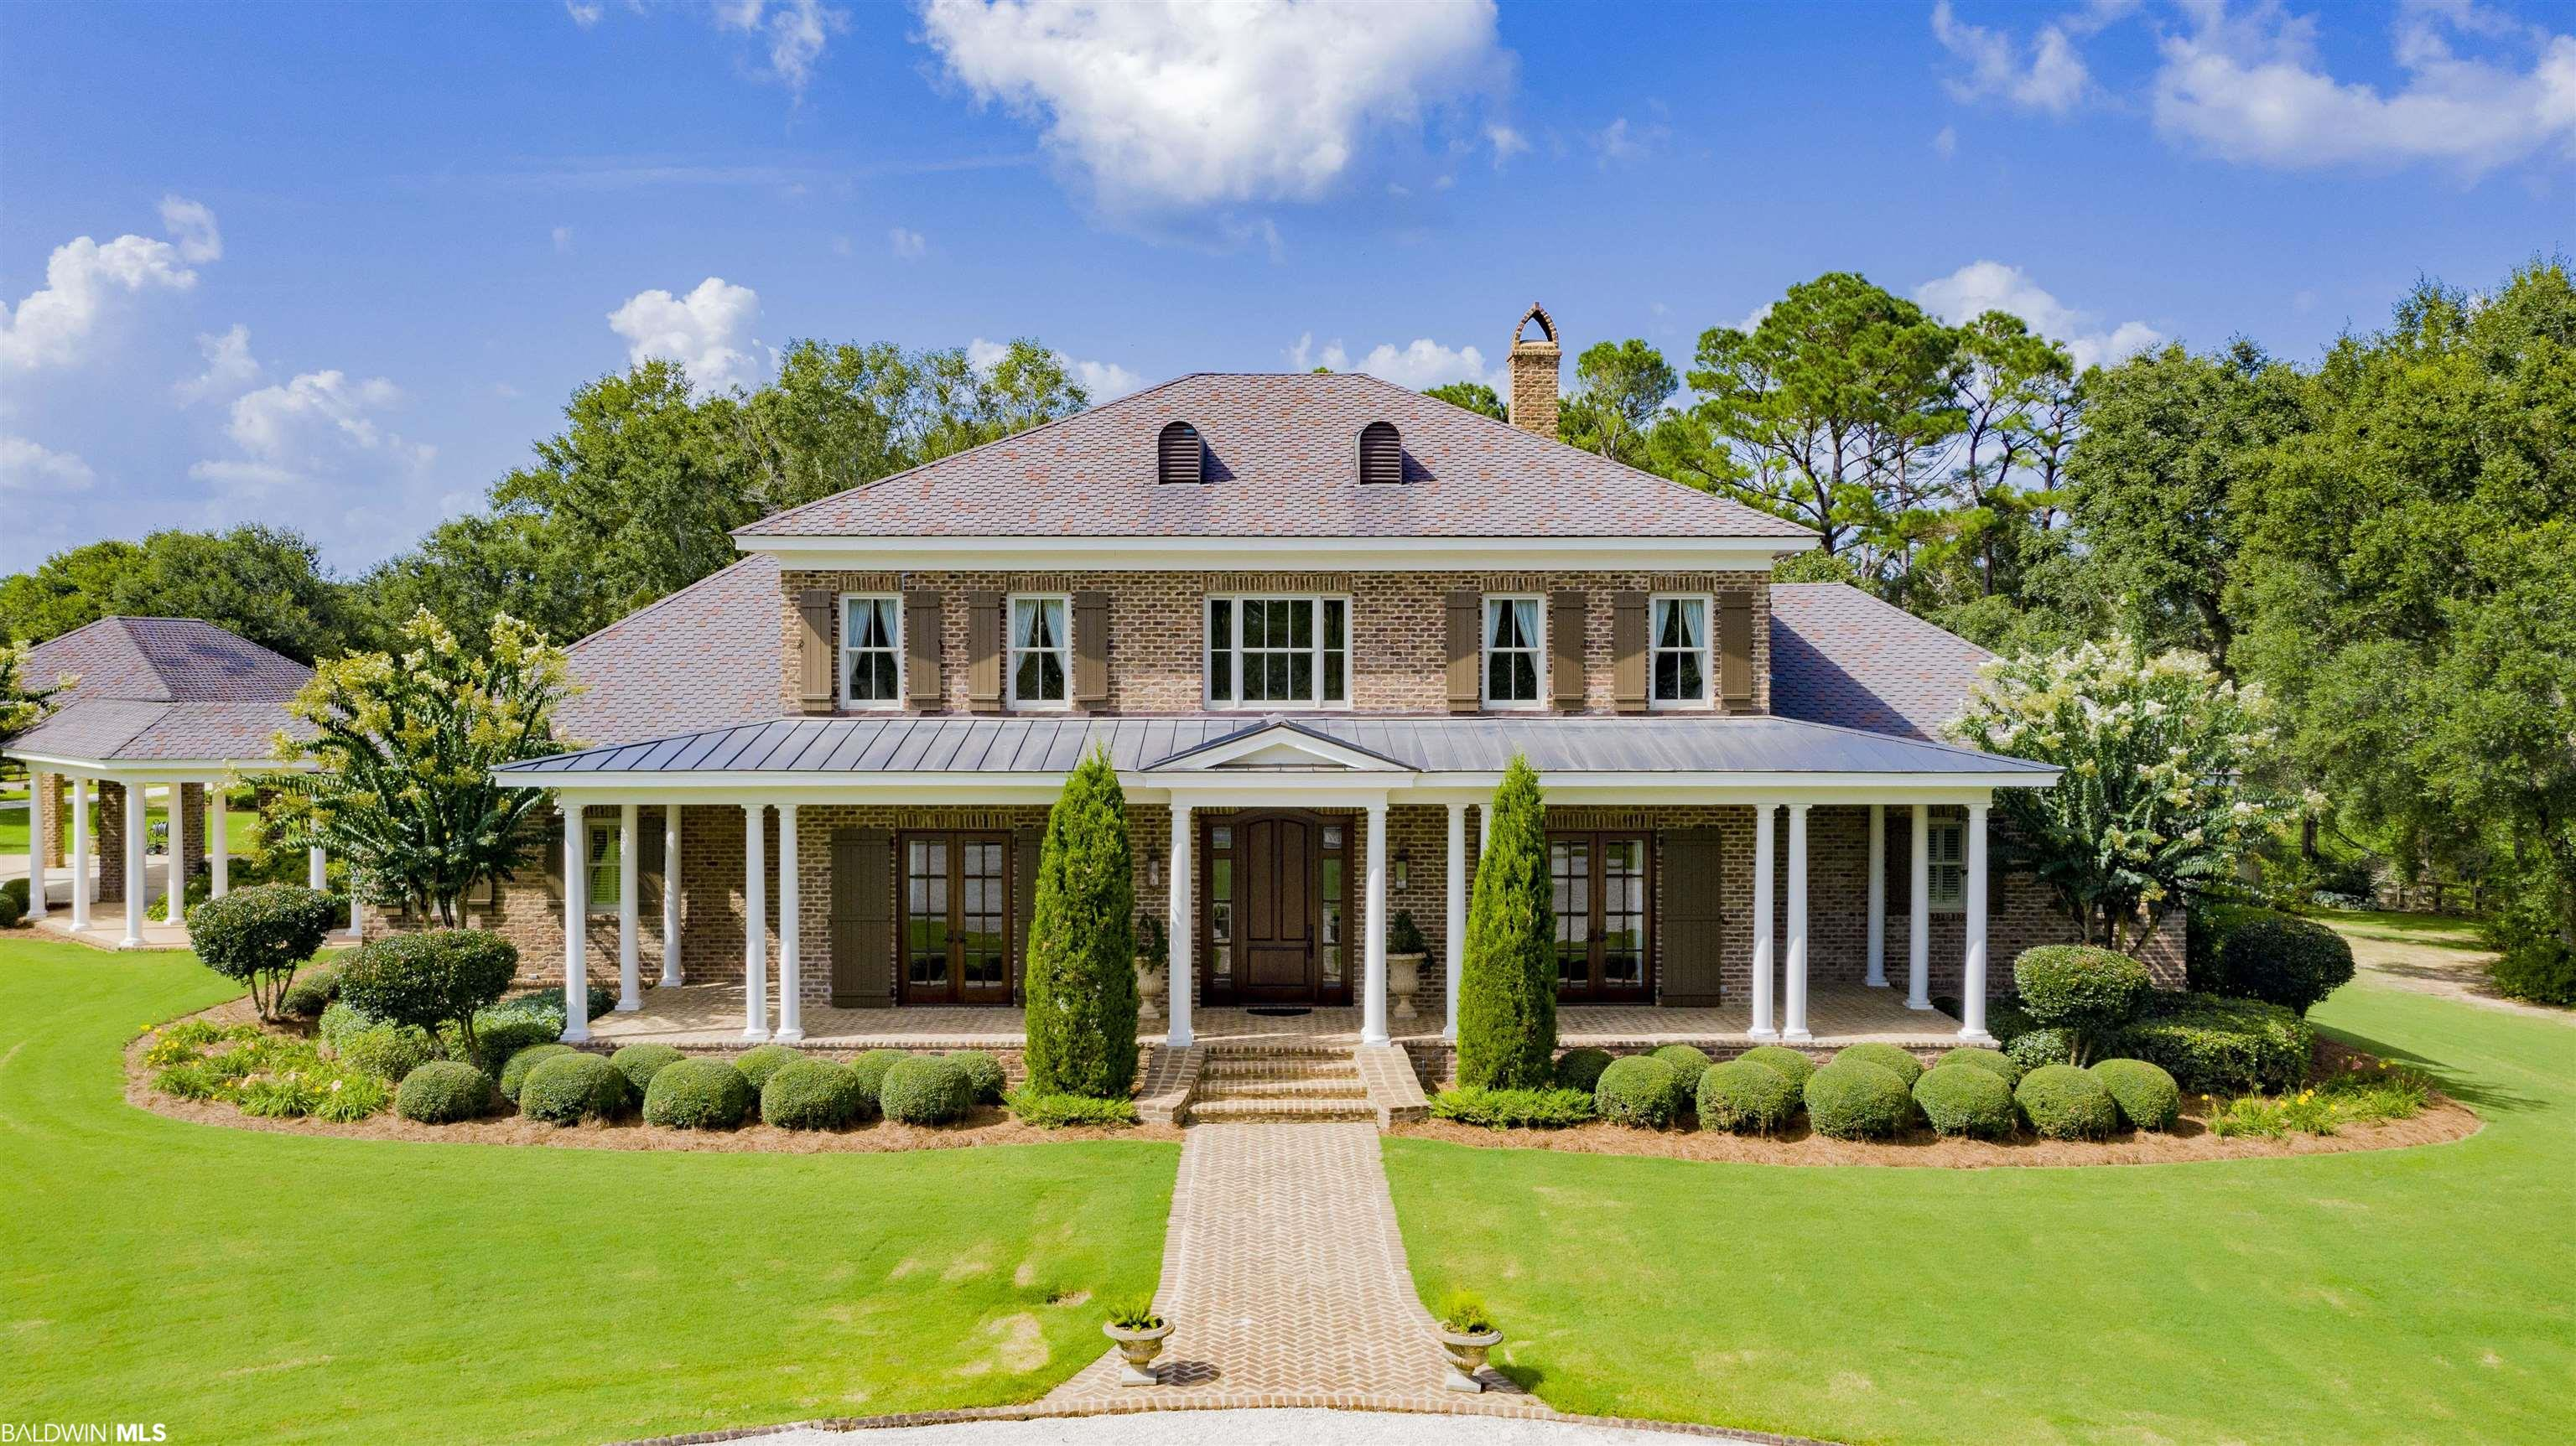 9447 County Road 34, Fairhope, AL 36532